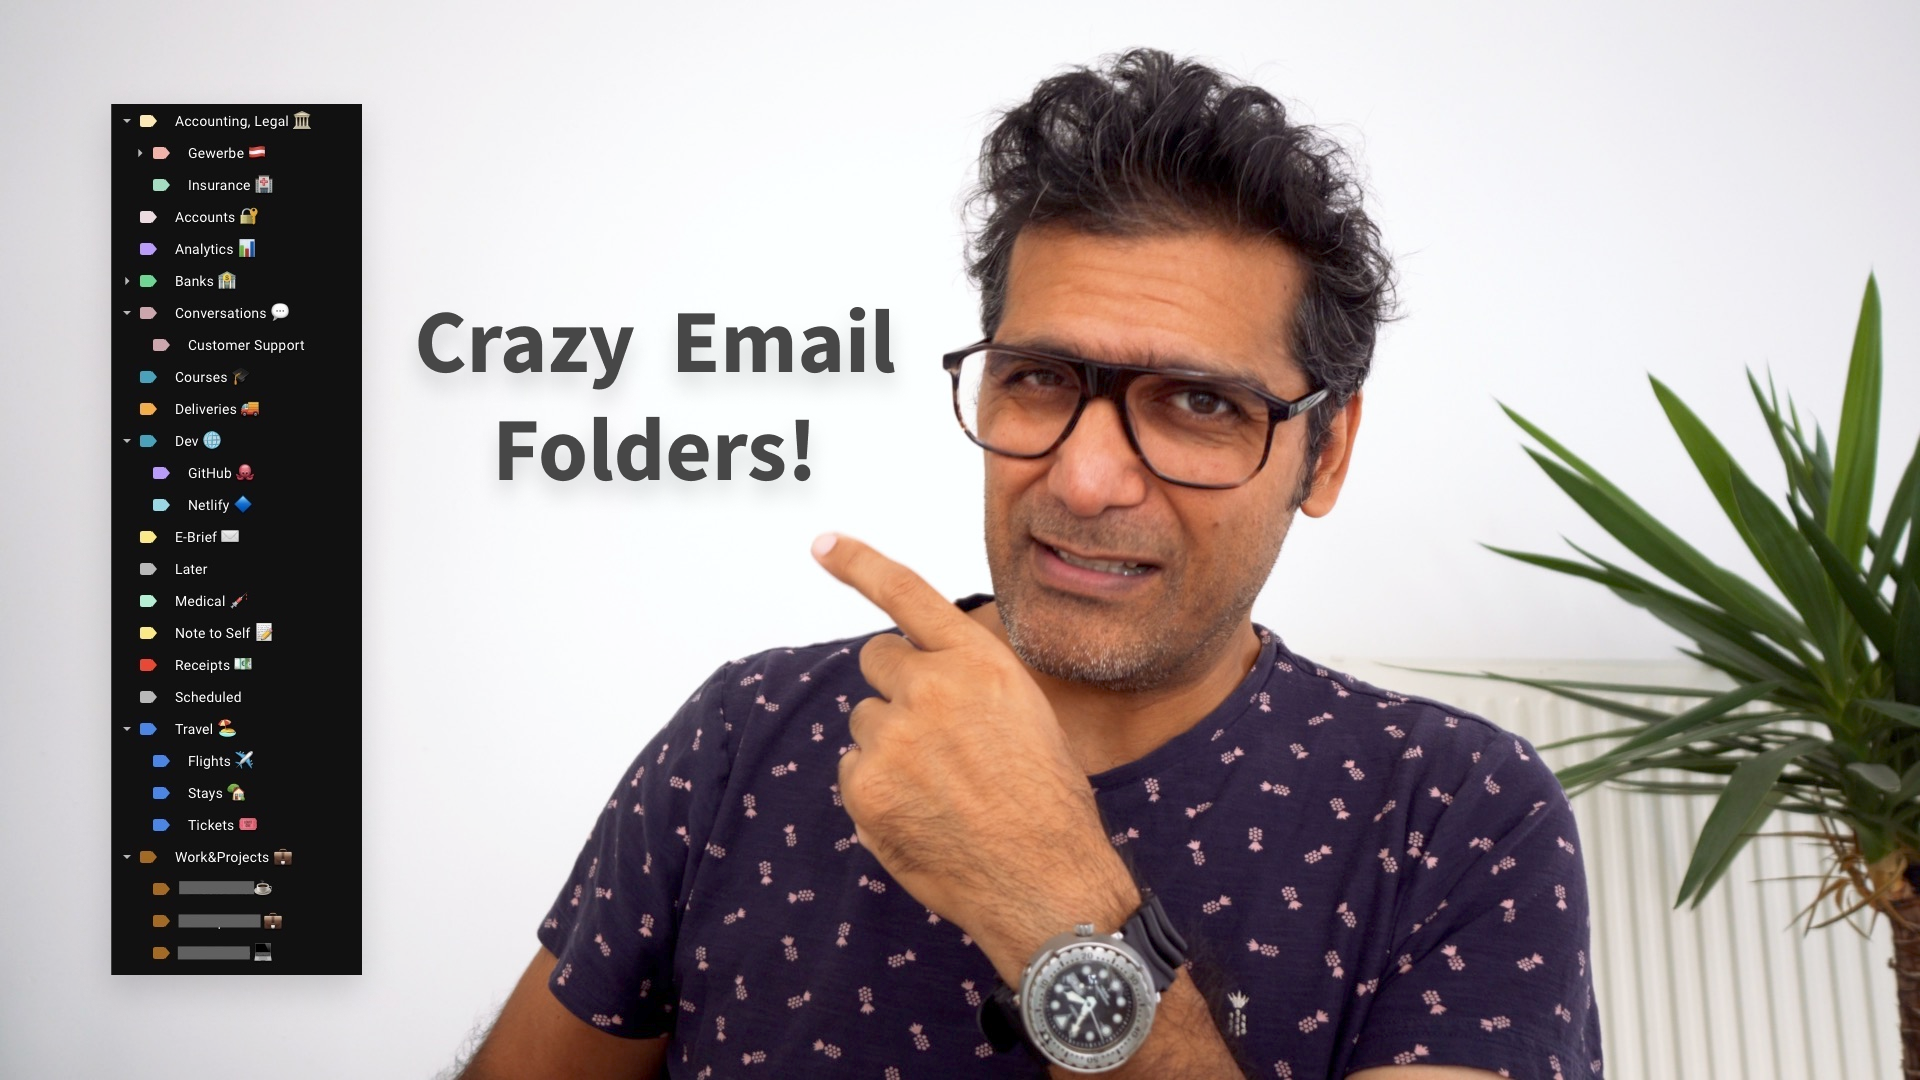 Crazy email folders!